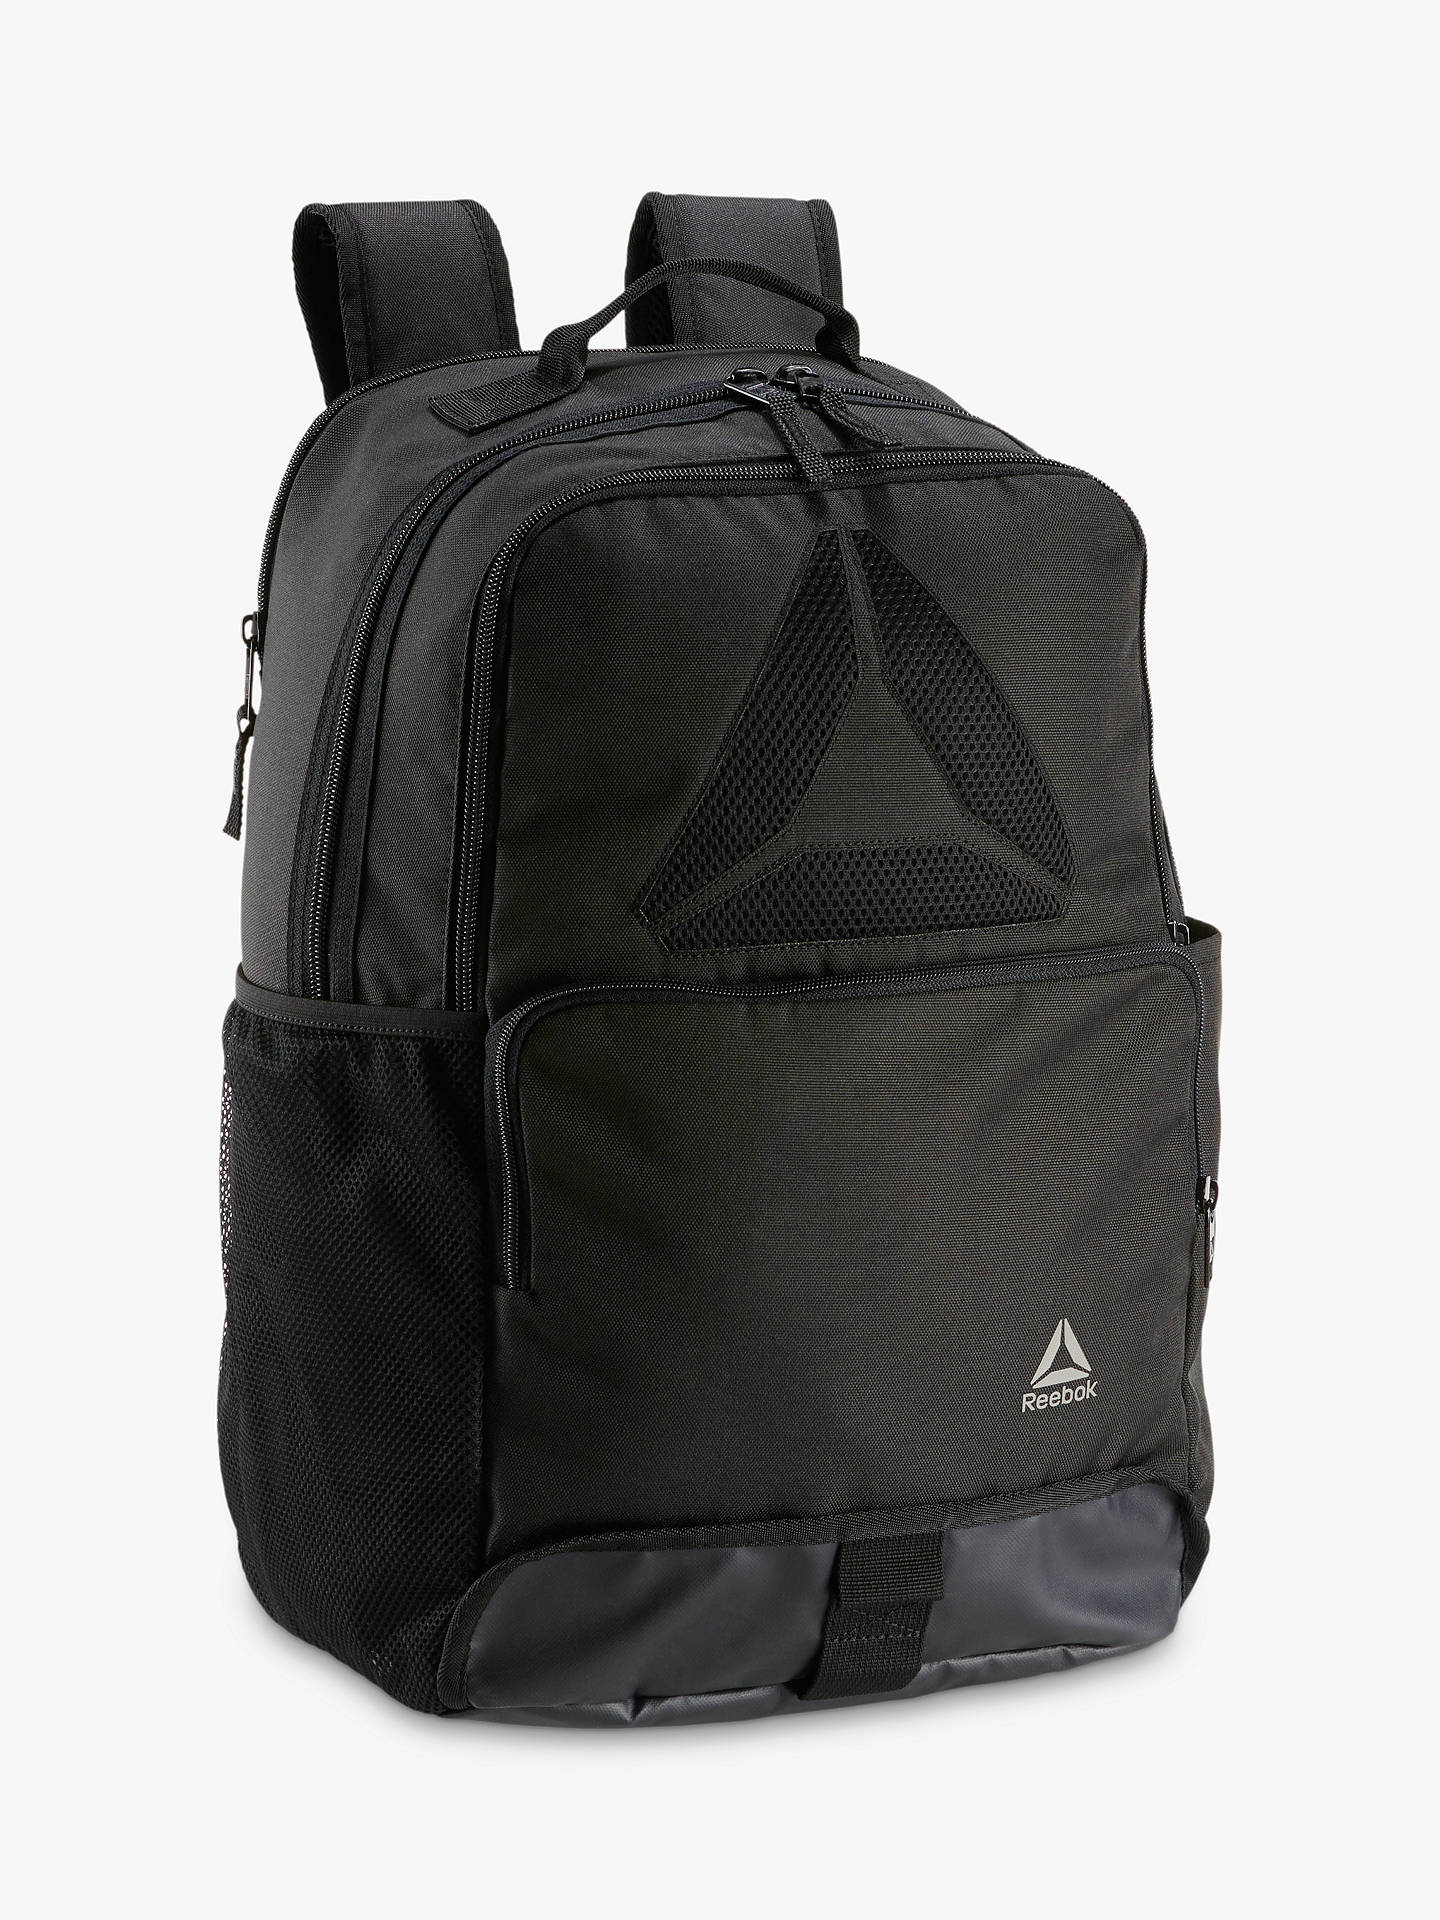 Buy Reebok Active Enhanced Large Backpack